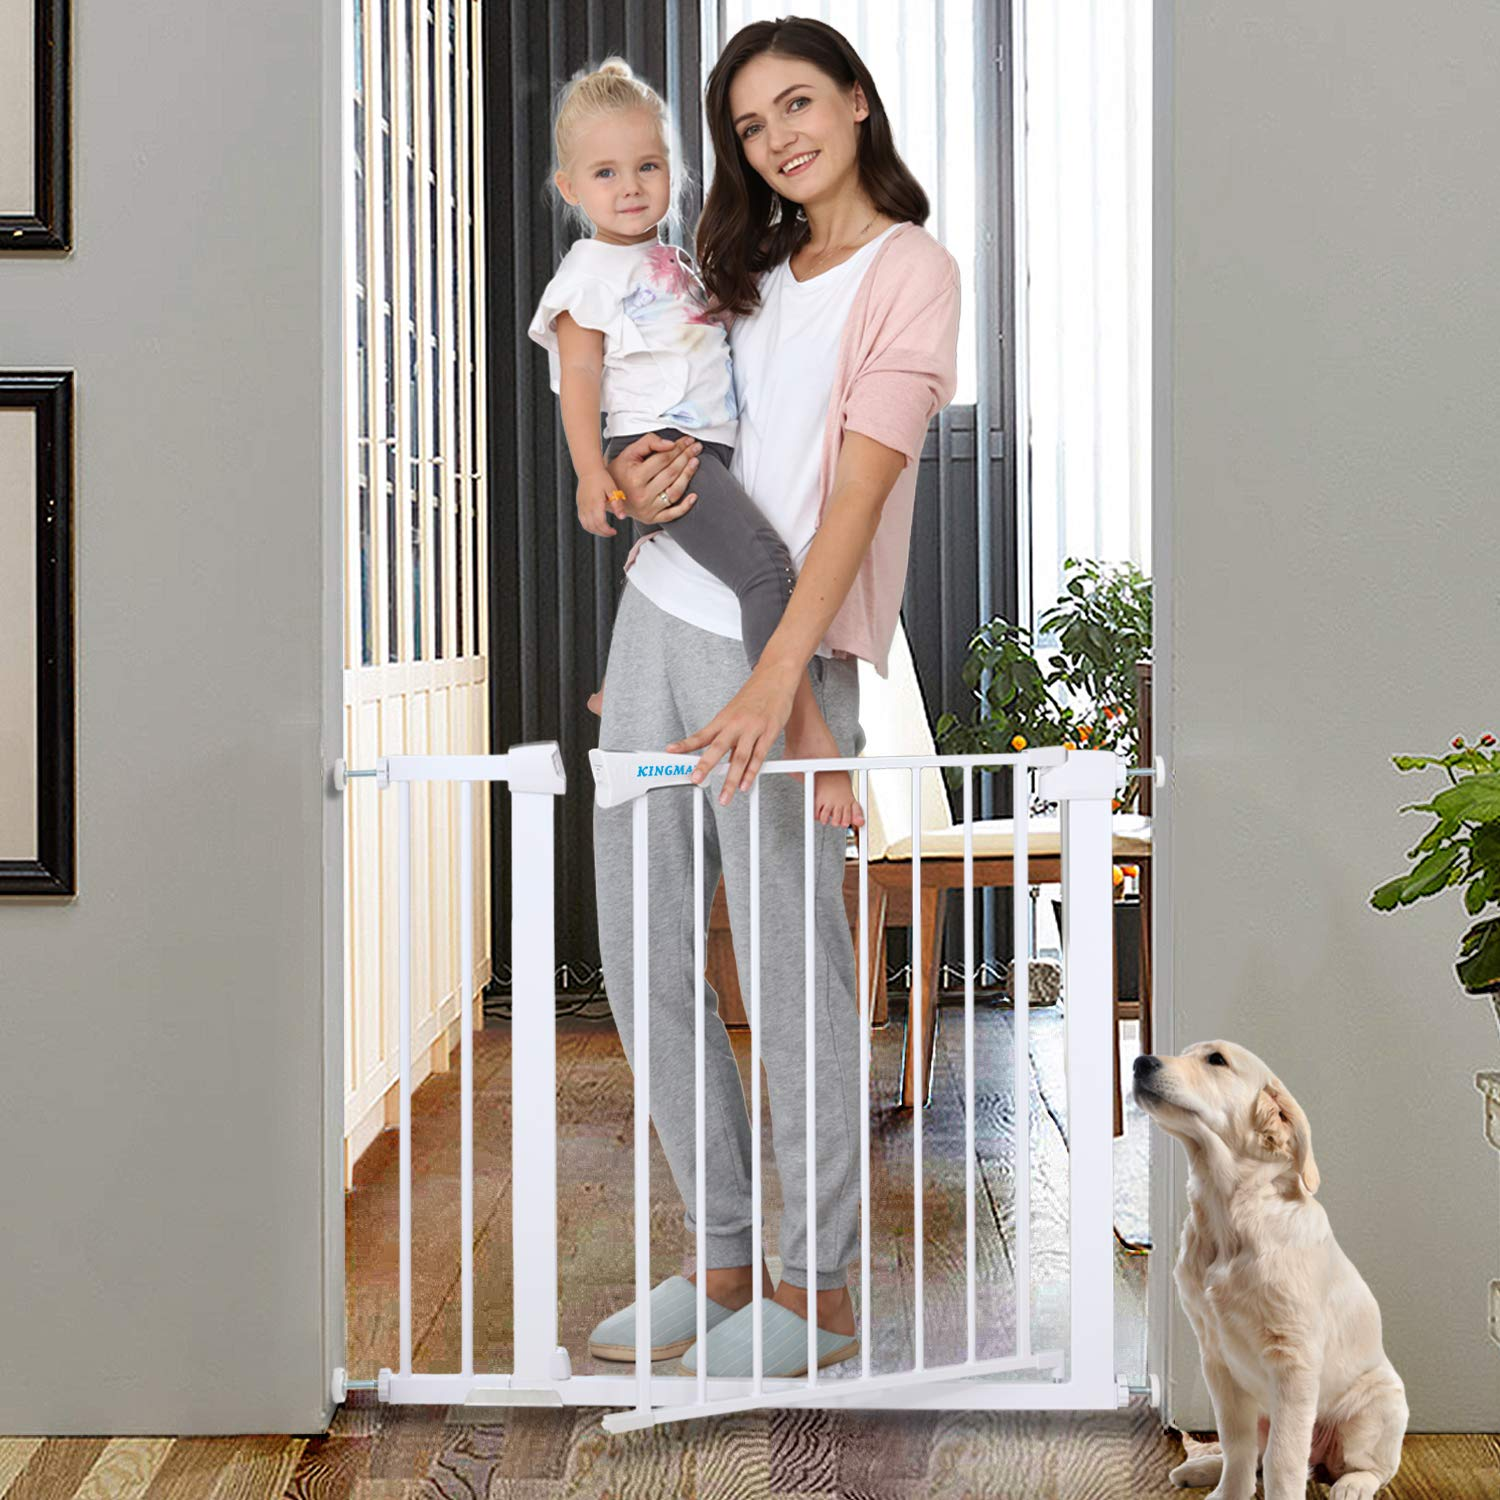 width 120-130 cm 2 Y-adapter Adjustable safety gate Berrin white-grey 75-175 cm 12 variations IB-Style without drilling stair /& door gate open like a door Best Value for Money